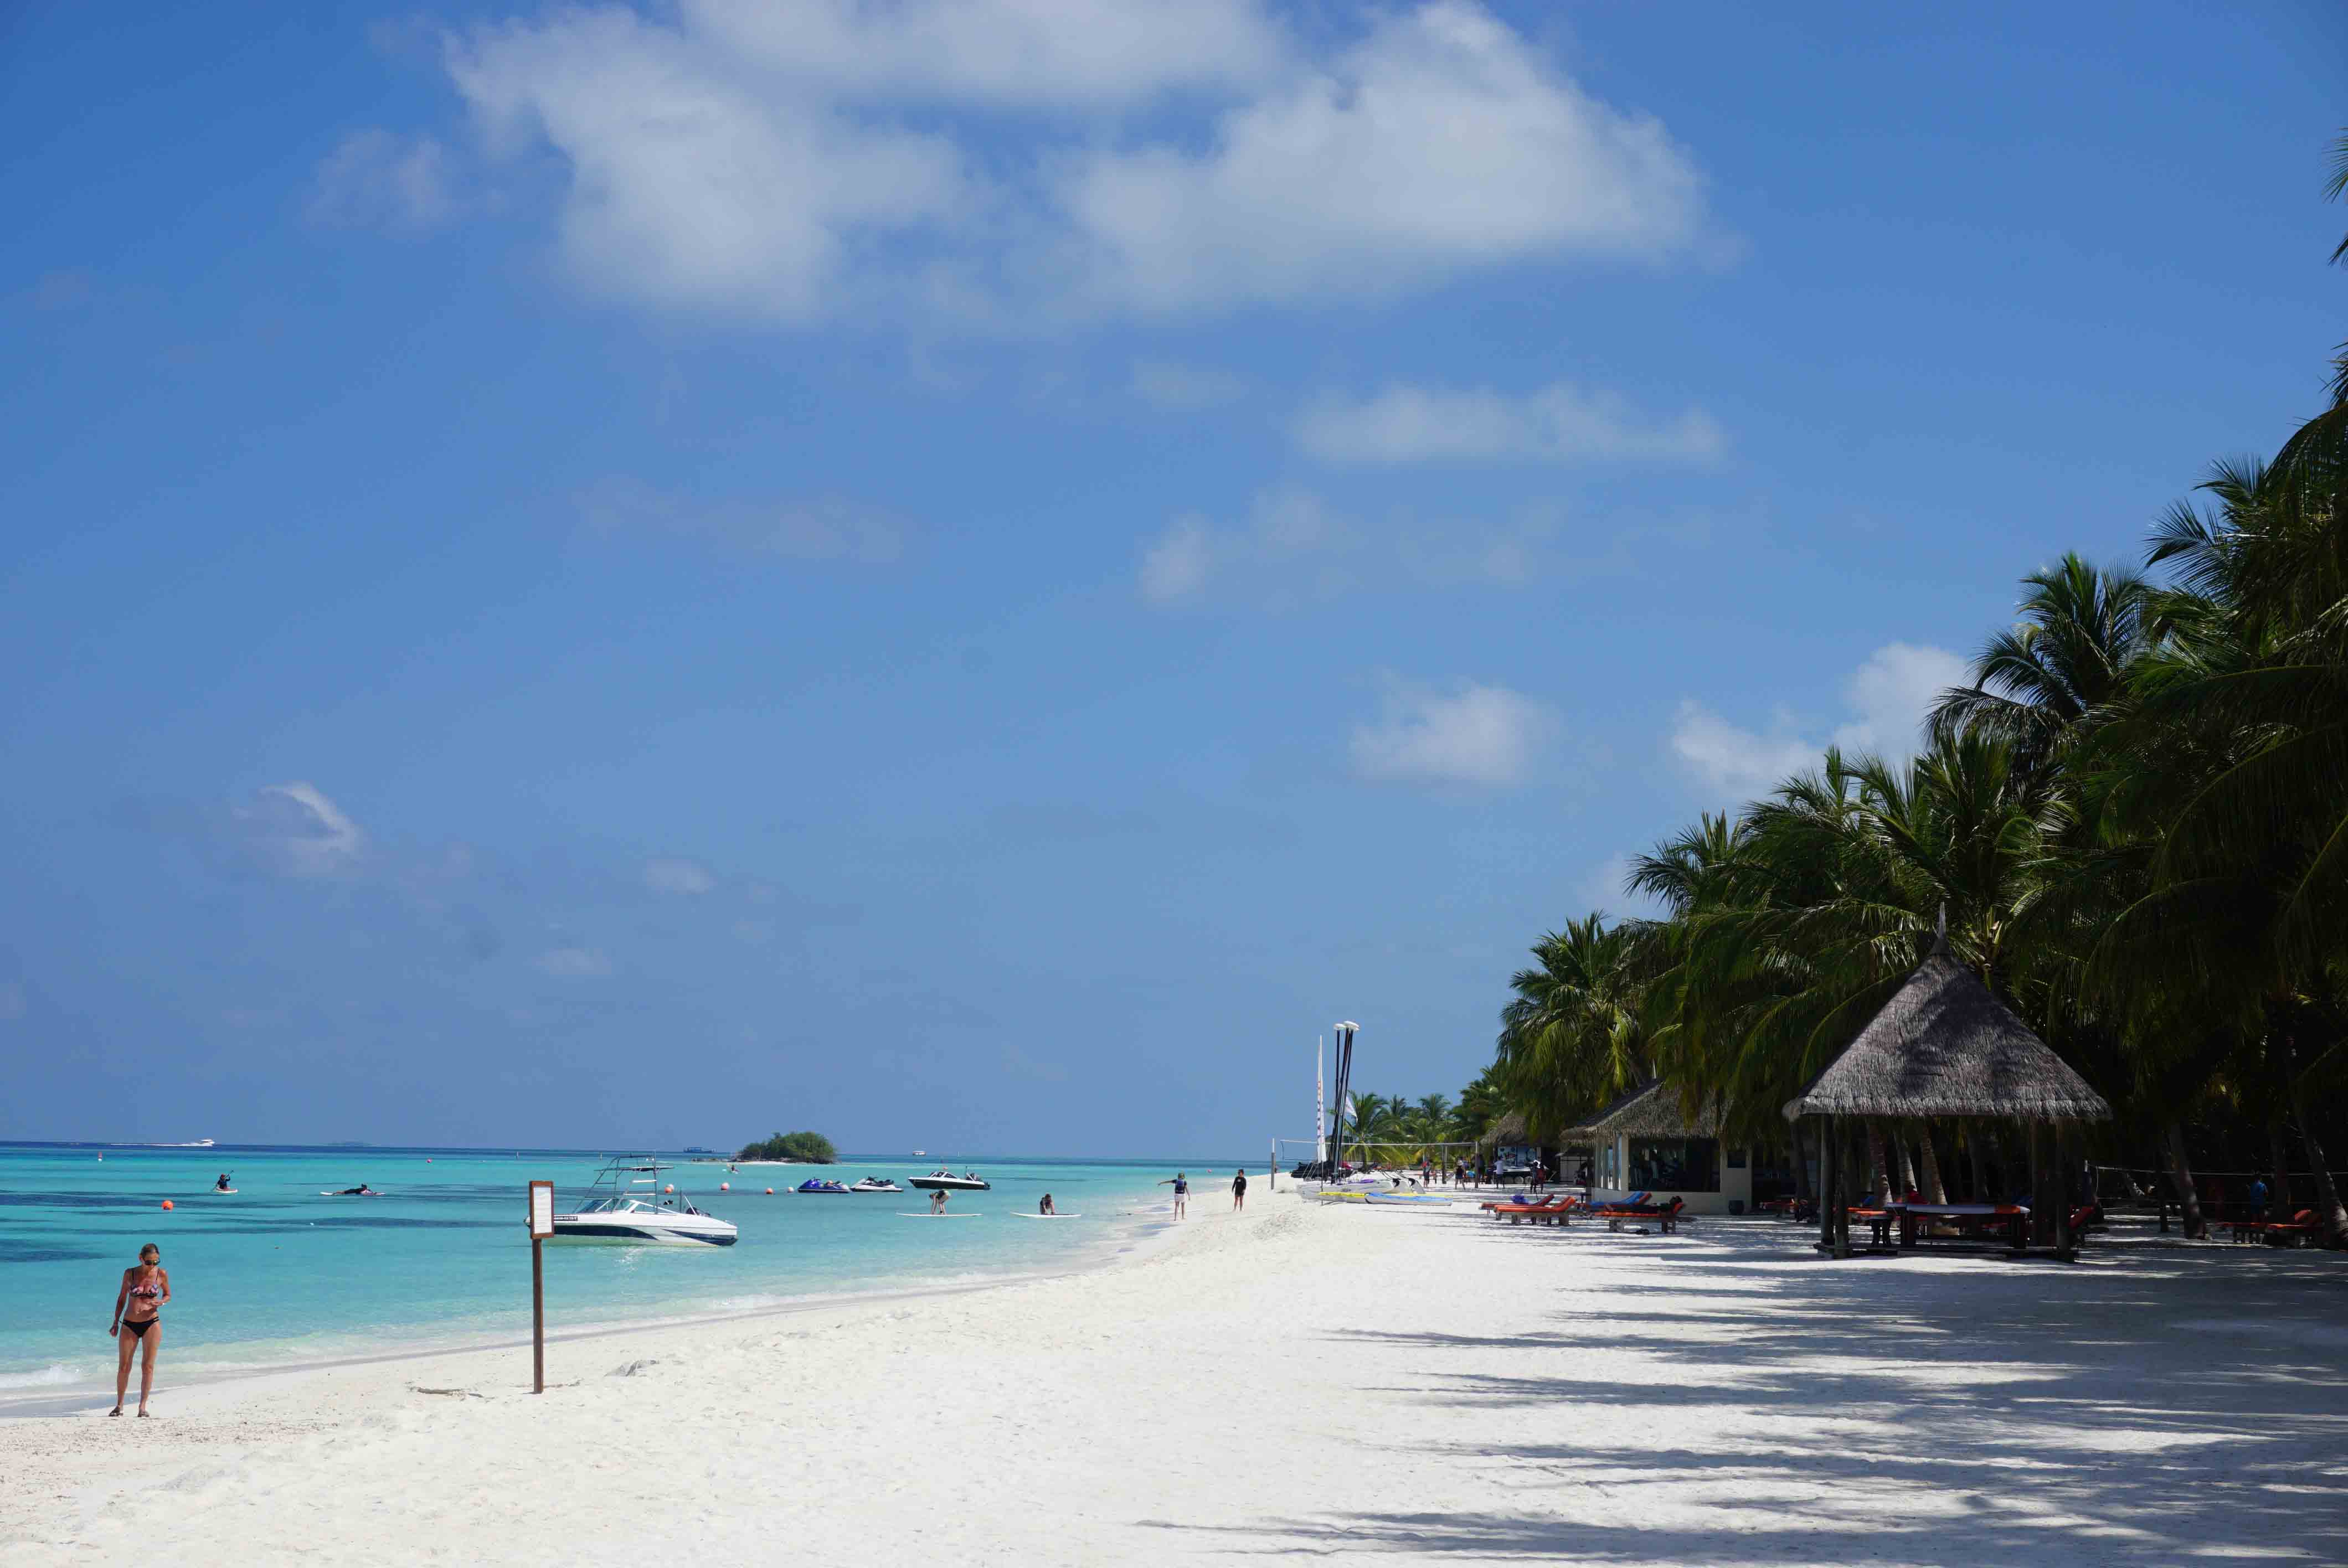 Relax in Maldives ep 3: A Day Visit to Club Med Kani from Huraa.